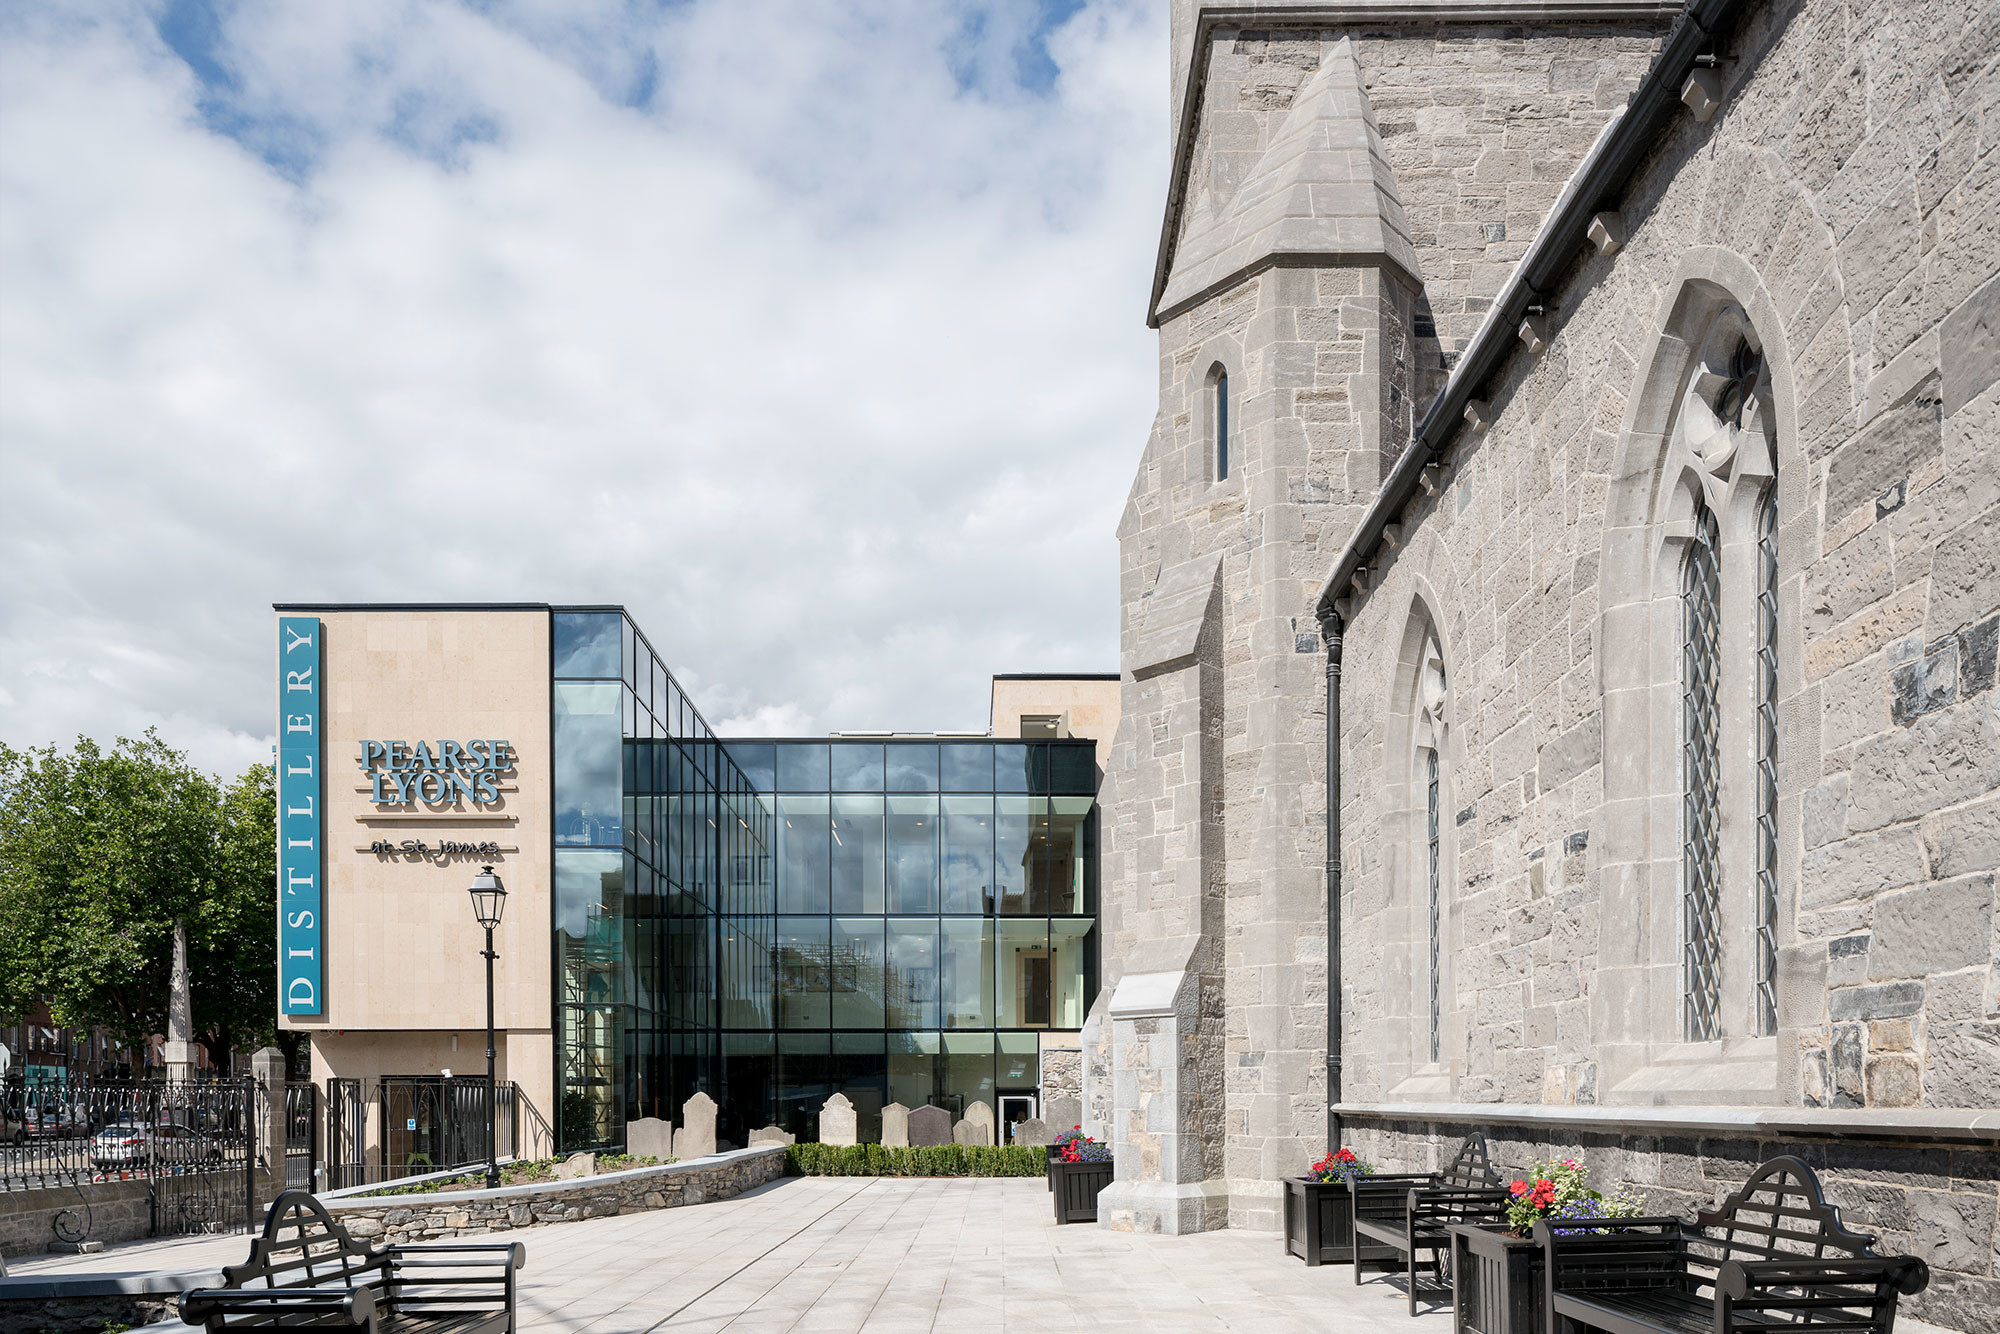 Pearse Lyons Whiskey Distillery & Visitors Centre